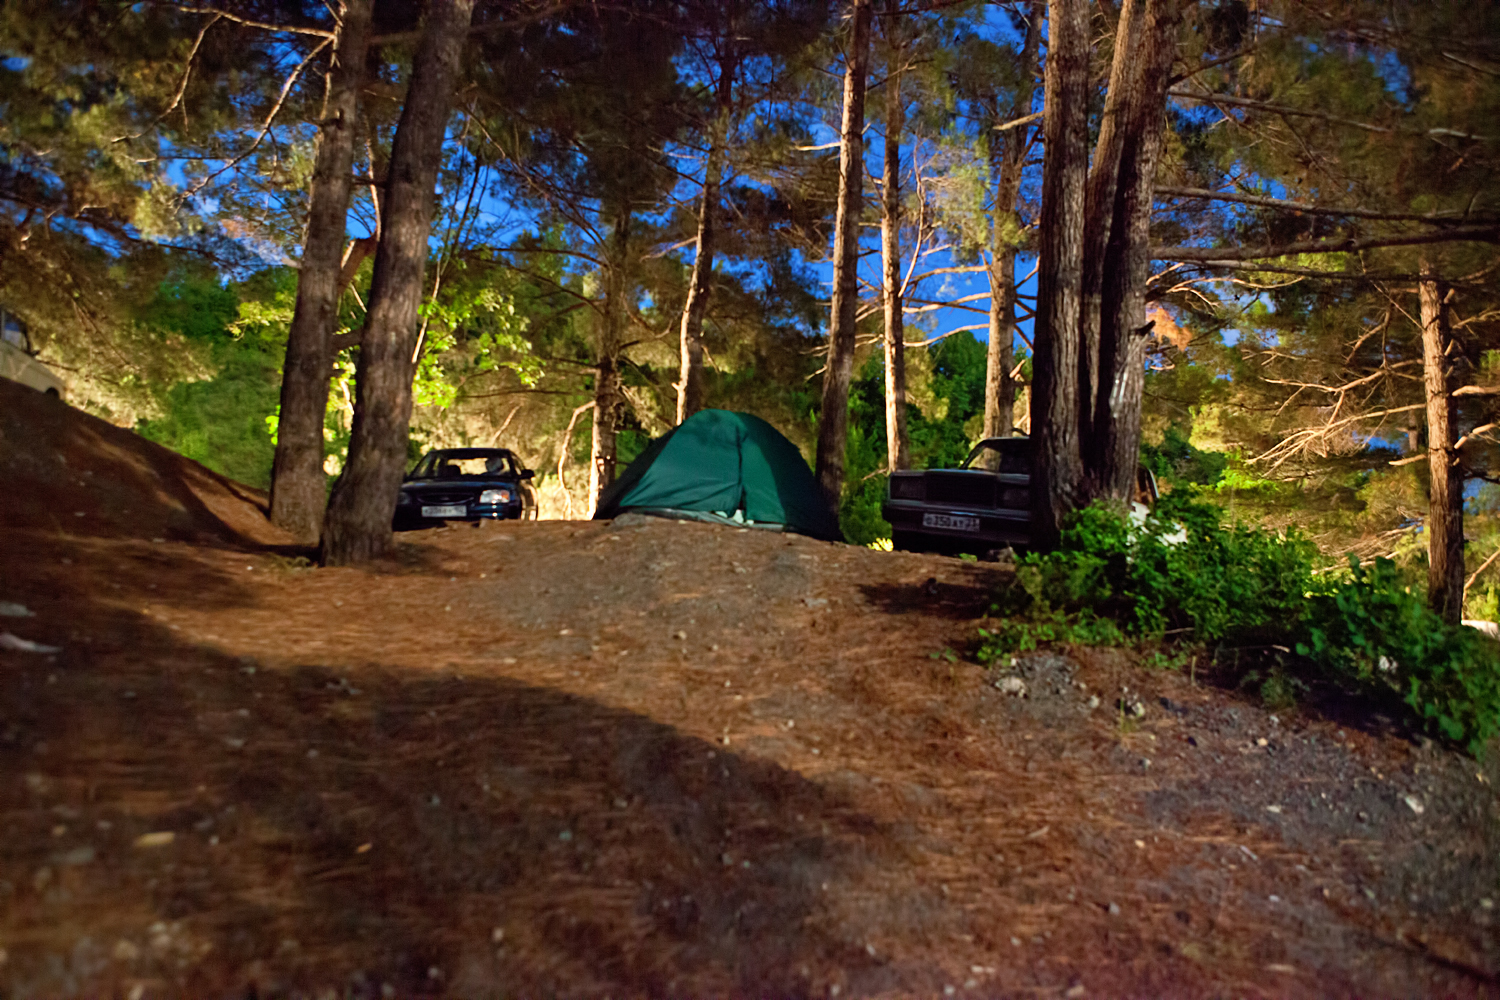 stockvault-camping-site-at-night137751.jpg